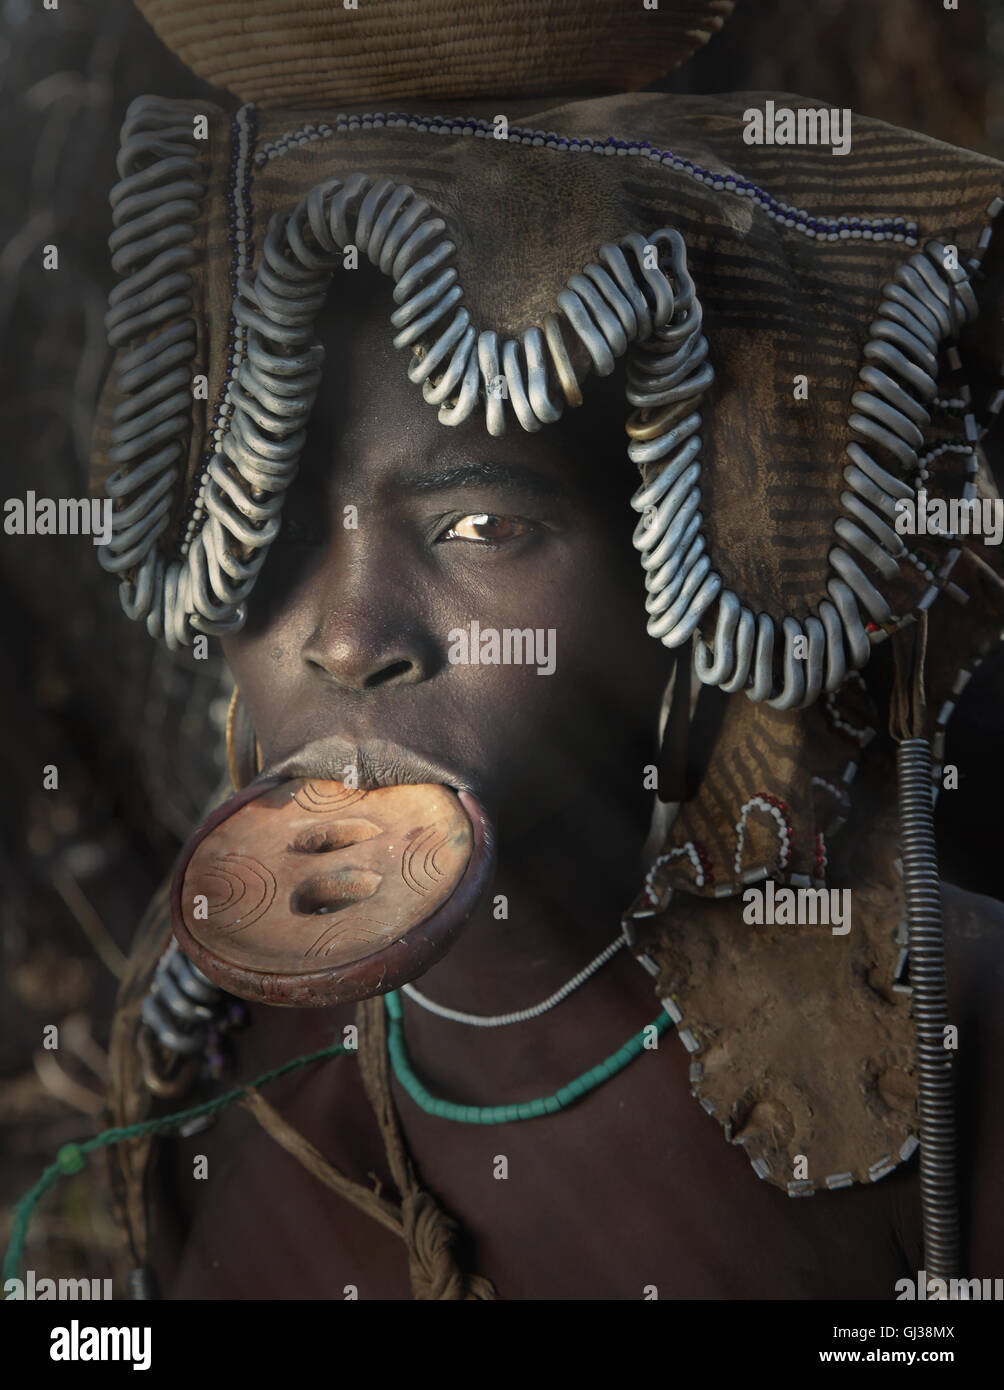 Woman of the Mursi Tribe with disc in her lower lip, Omo Valley, Ethiopia - Stock Image